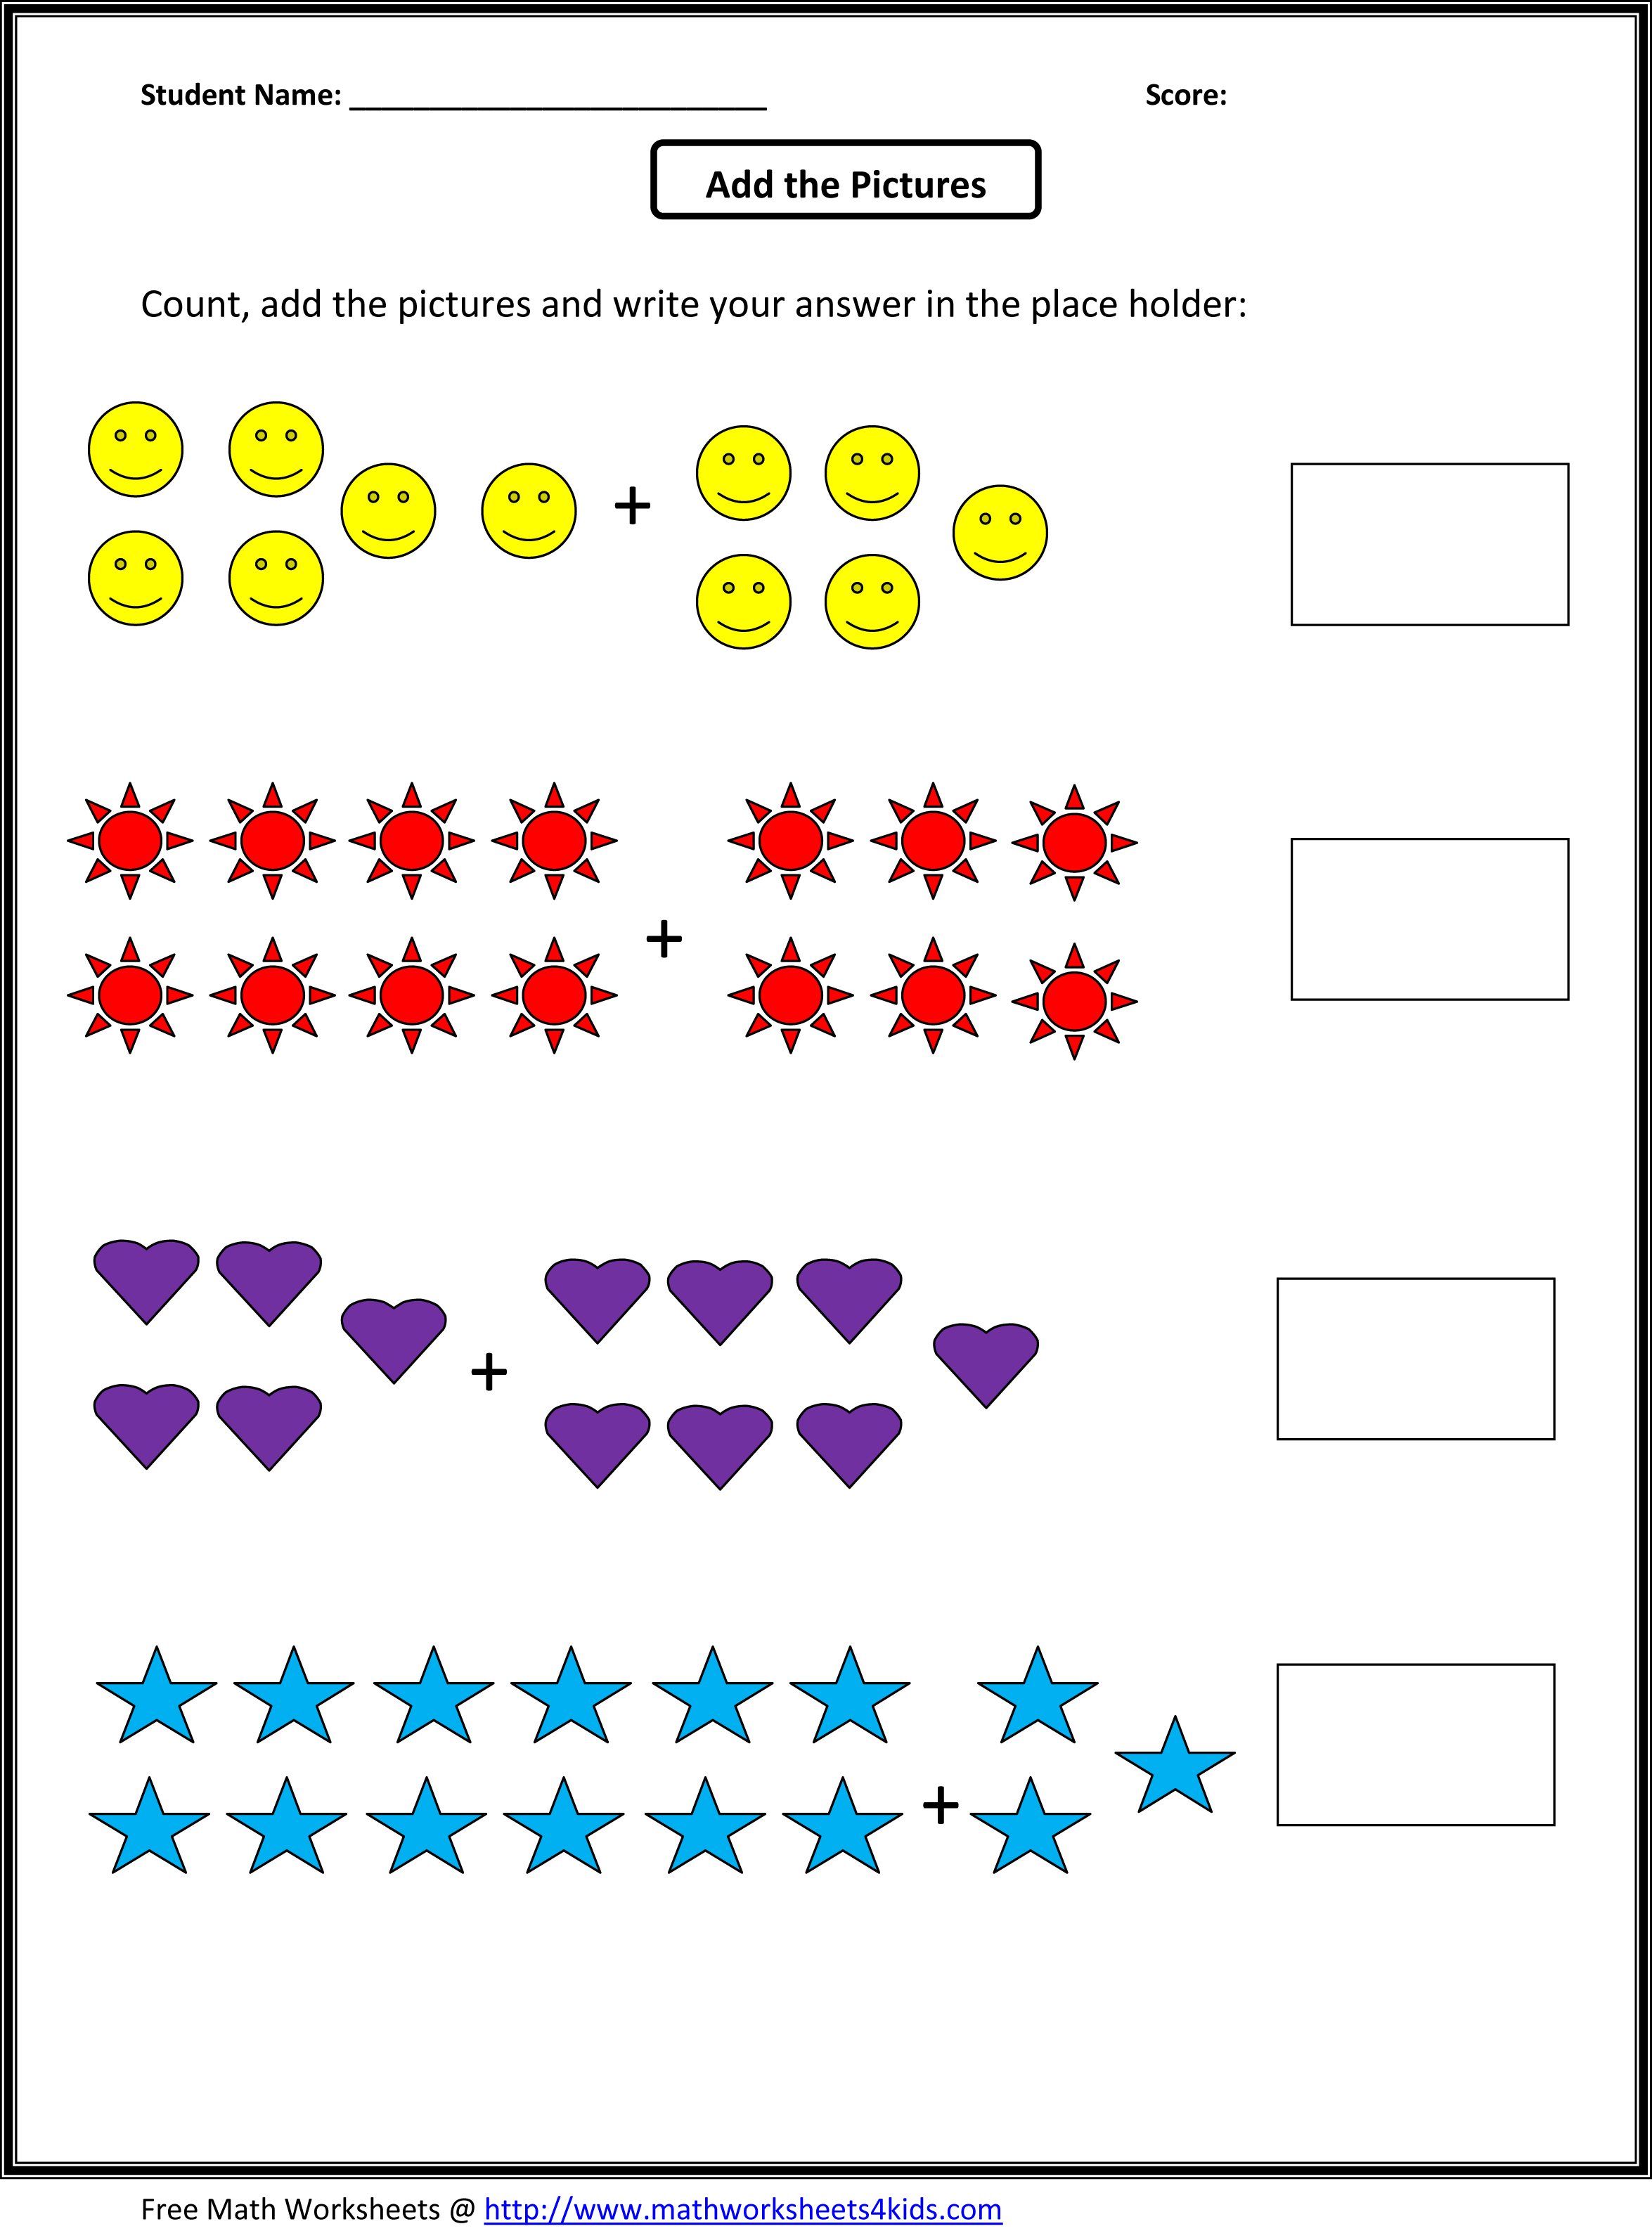 Proatmealus  Fascinating Grade  Maths Worksheet  Reocurent With Hot Math Worksheets For St Grade Free  Reocurent With Enchanting Maths For Year  Worksheets Also Line Graph Worksheets High School In Addition Worksheets For Th Grade English And Ks Maths Worksheets With Answers As Well As Word Scramble Worksheet Maker Additionally Worksheet On Work From Reocurentcom With Proatmealus  Hot Grade  Maths Worksheet  Reocurent With Enchanting Math Worksheets For St Grade Free  Reocurent And Fascinating Maths For Year  Worksheets Also Line Graph Worksheets High School In Addition Worksheets For Th Grade English From Reocurentcom